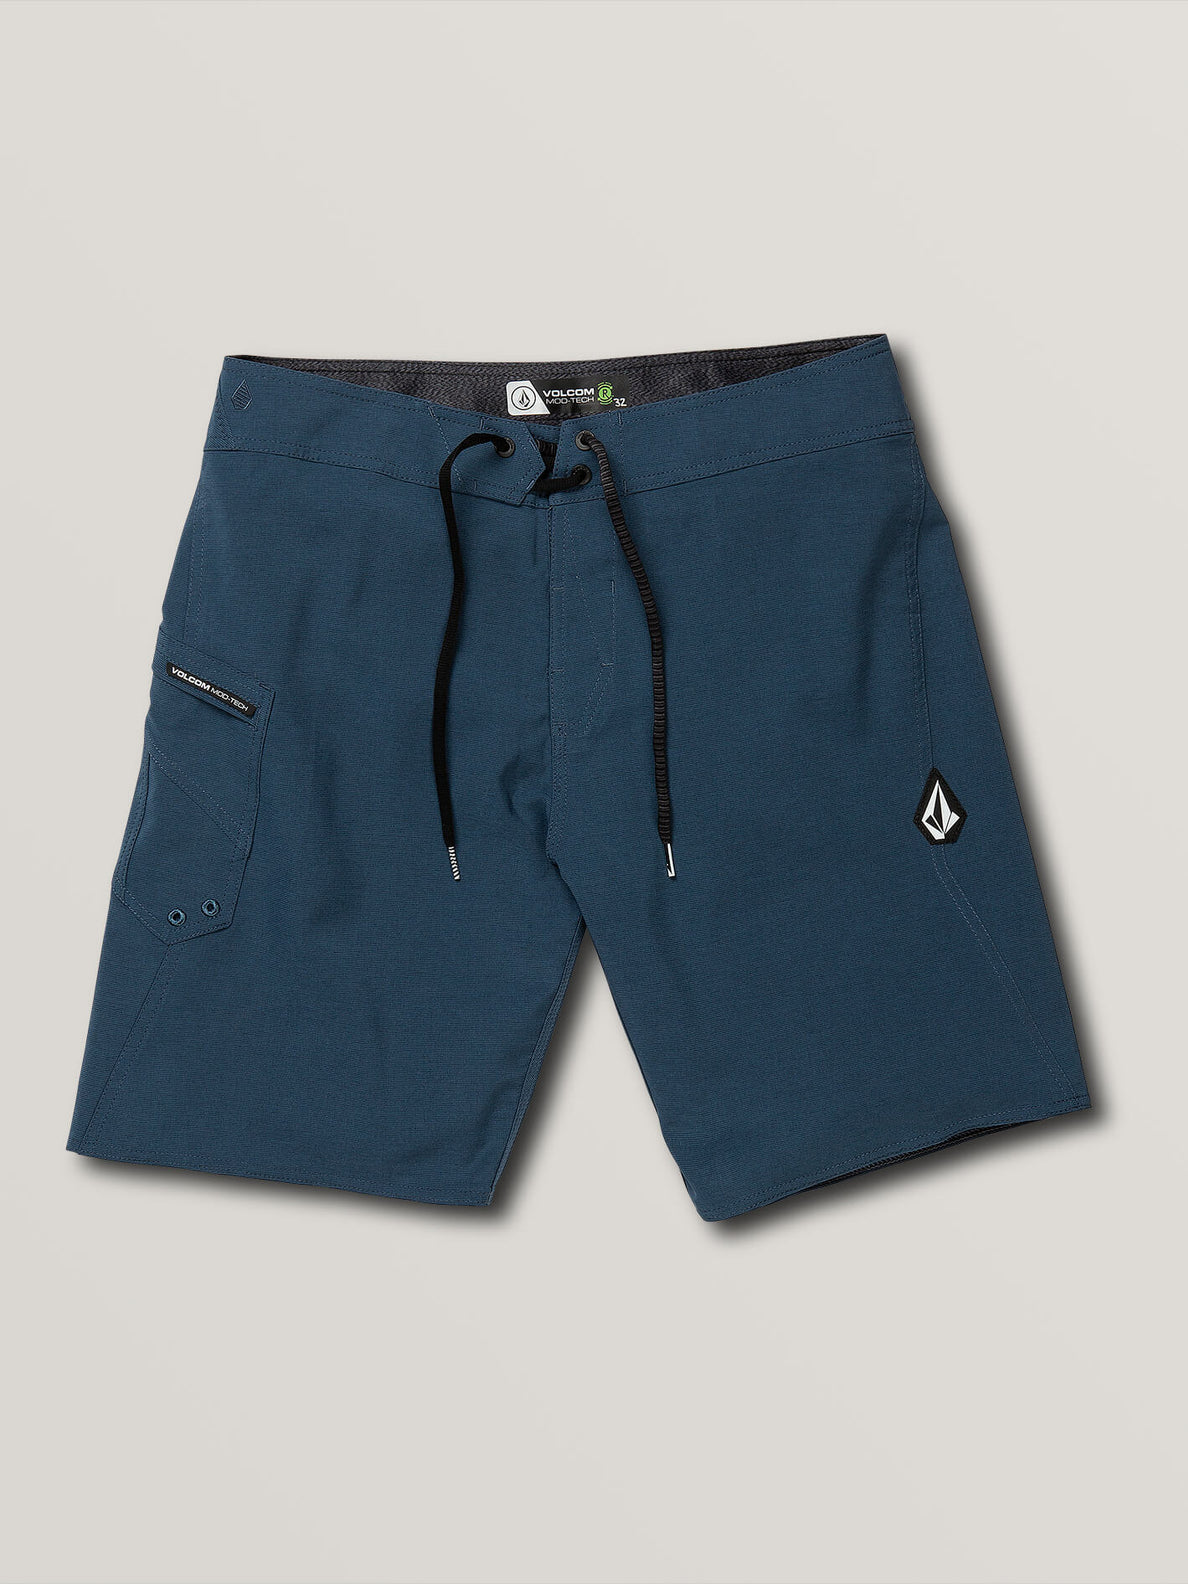 Lido Solid Mod Trunks - Smokey Blue (A0811926_SMB) [F]